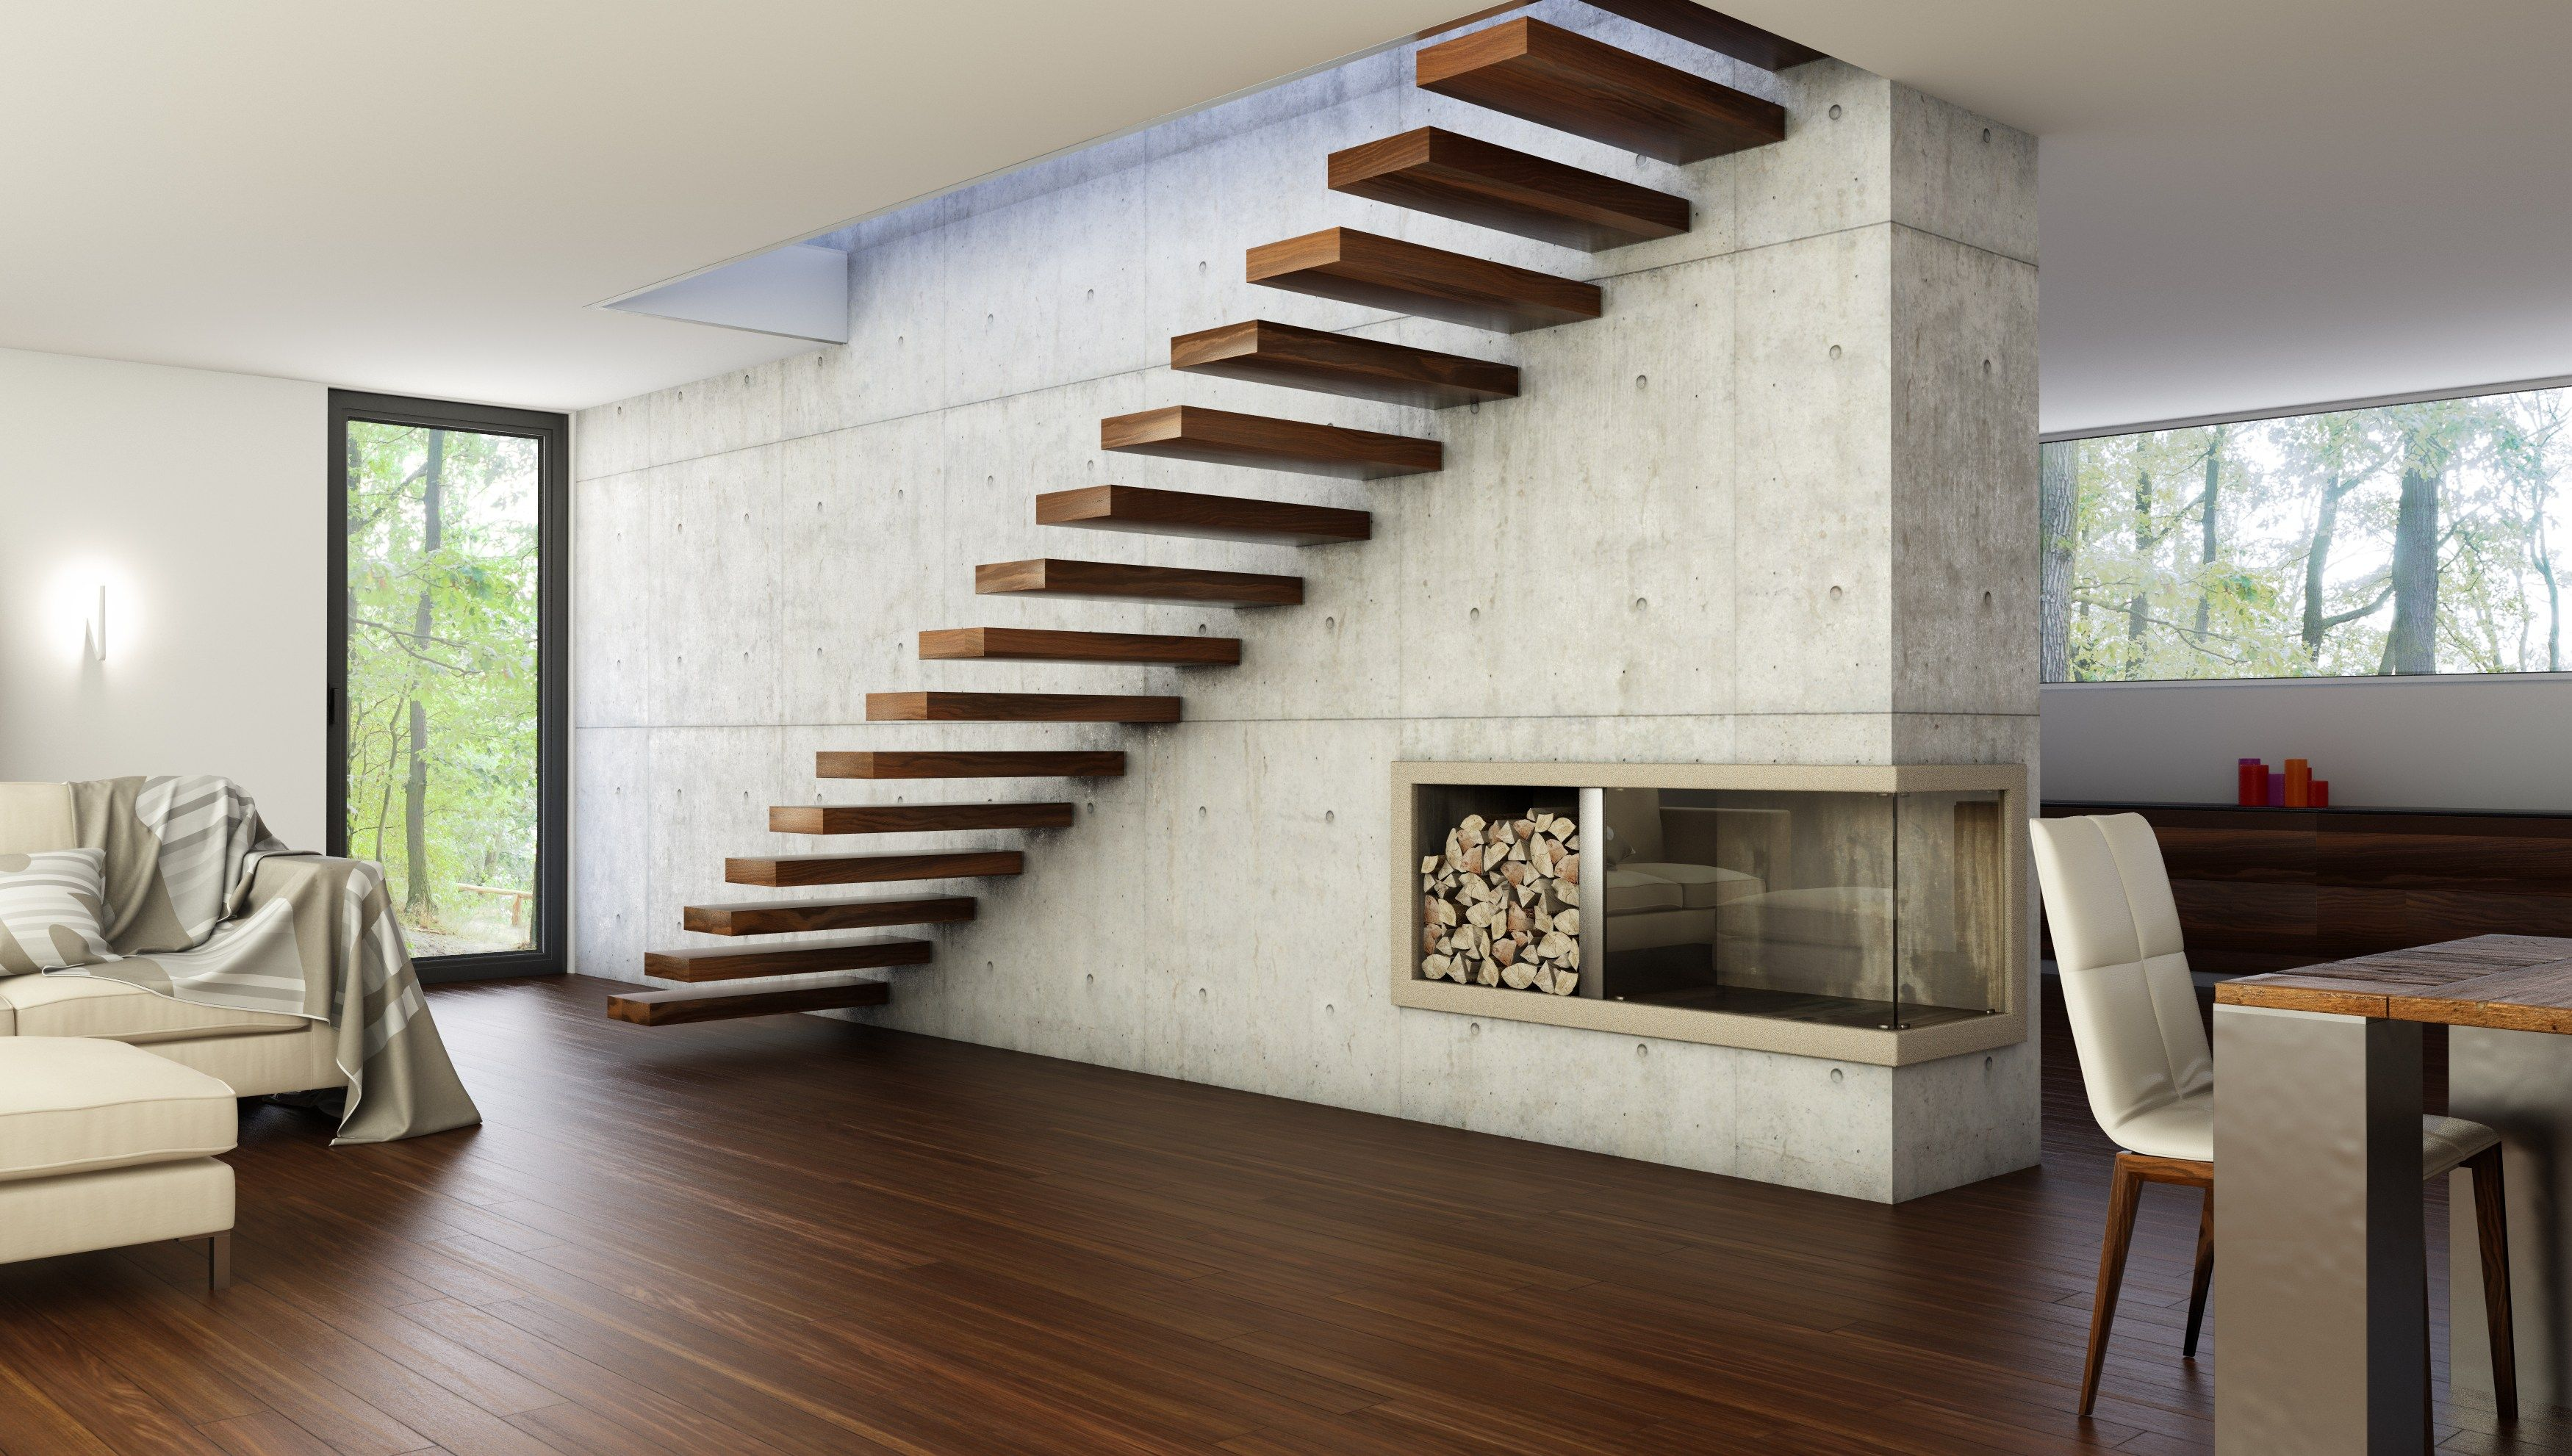 Wooden cantilevered staircase fireplace windows wood and